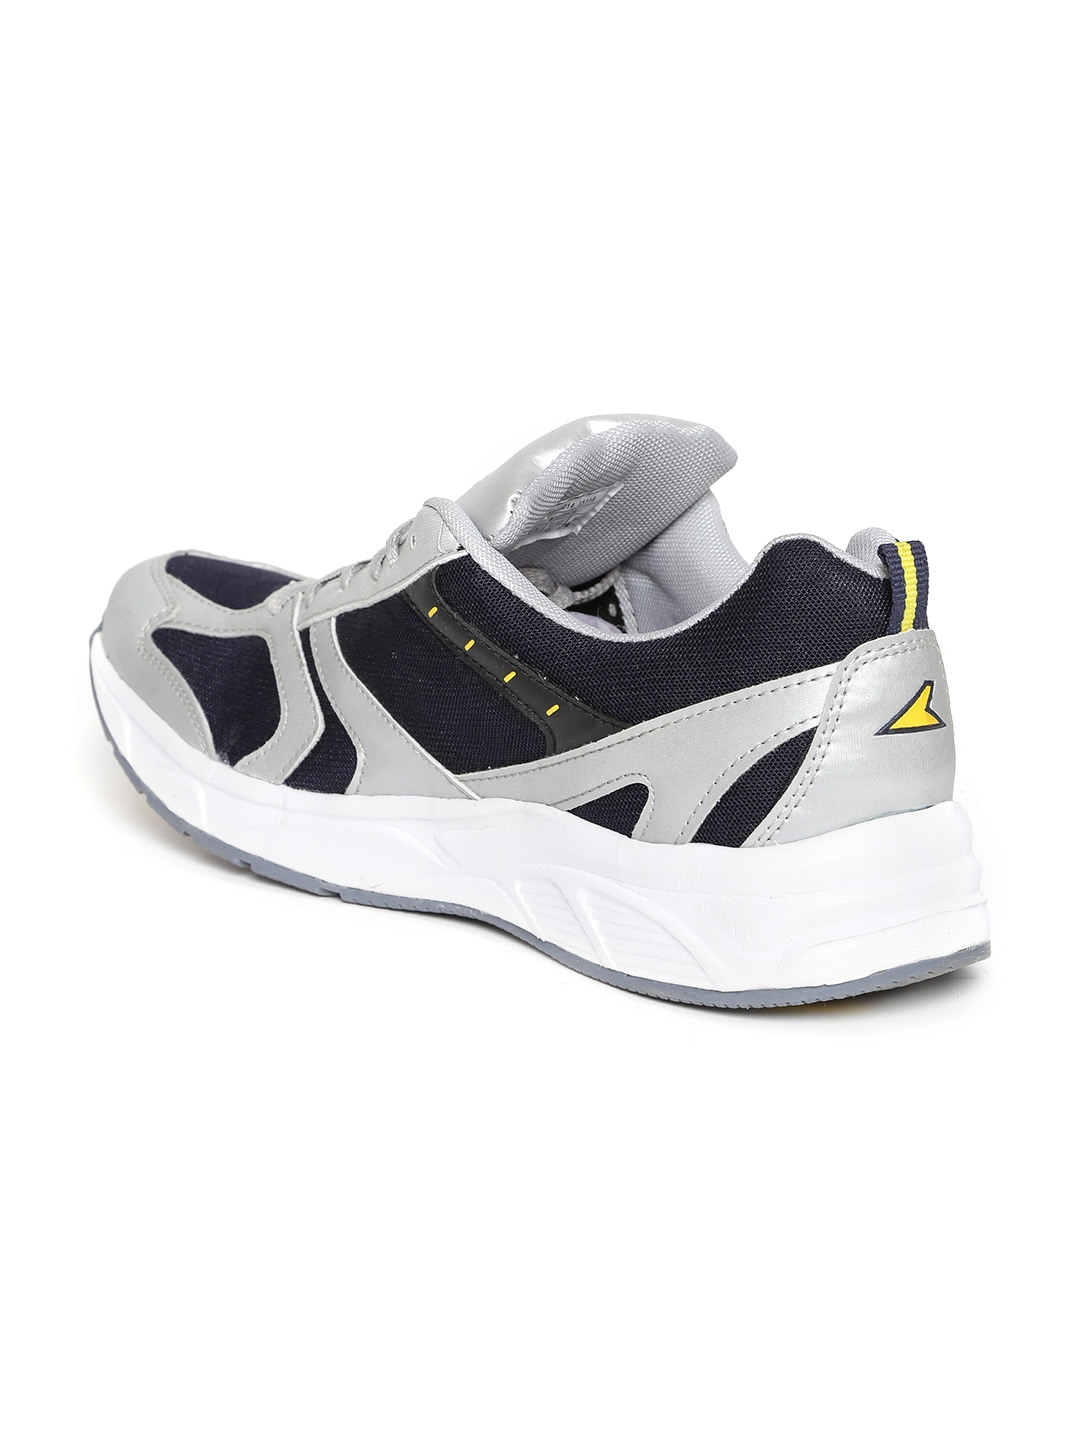 sports shoes price list in india 28 06 2017 buy sports